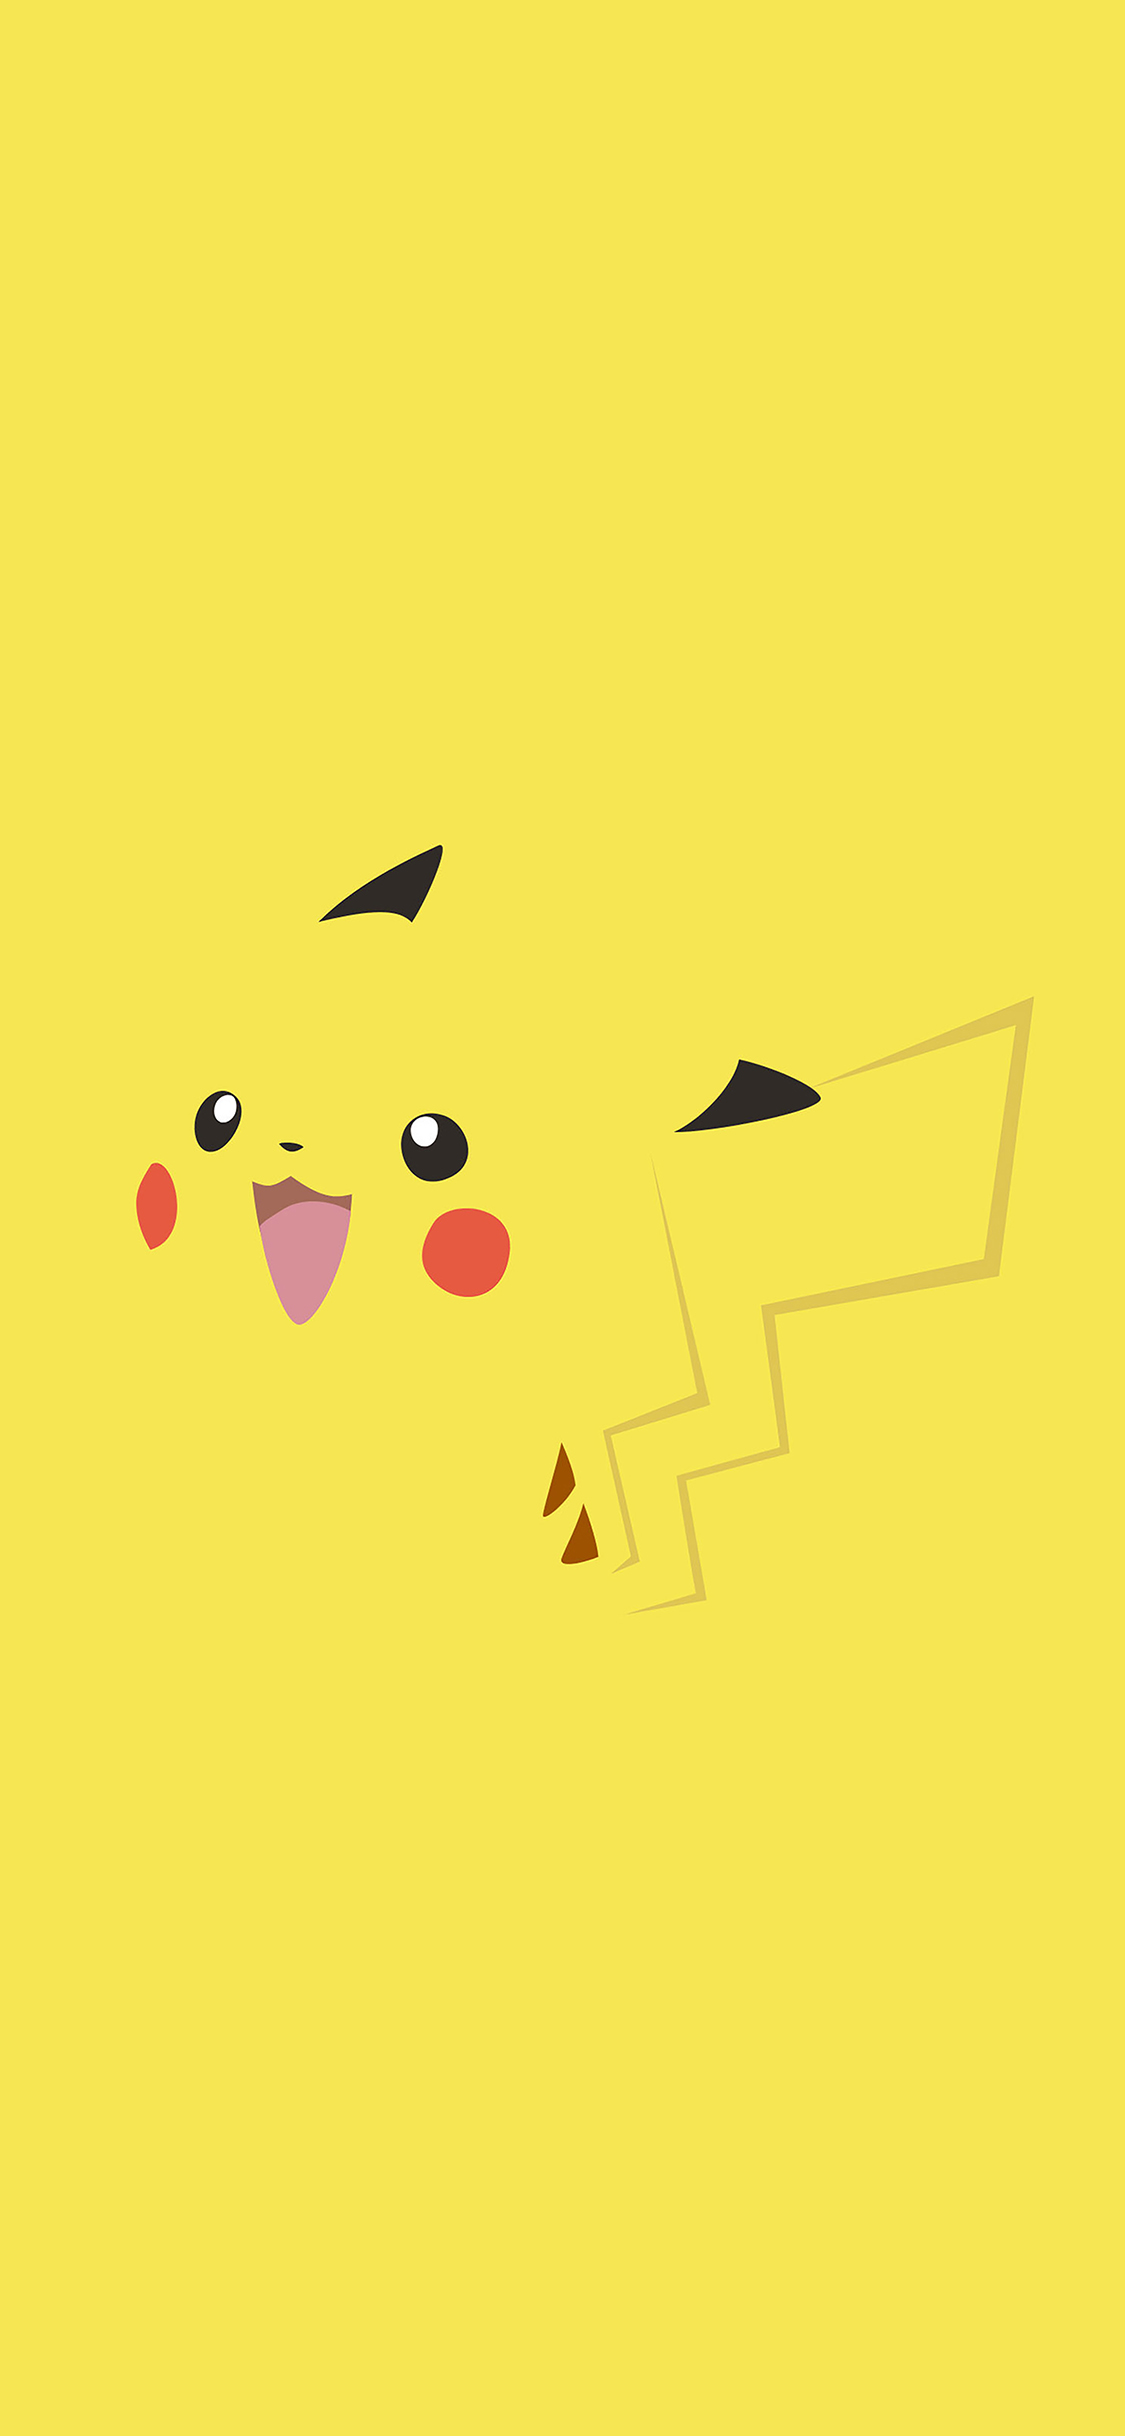 Cute Pikachu Iphone 5 Wallpaper Ab71 Wallpaper Pikachu Yellow Anime Papers Co